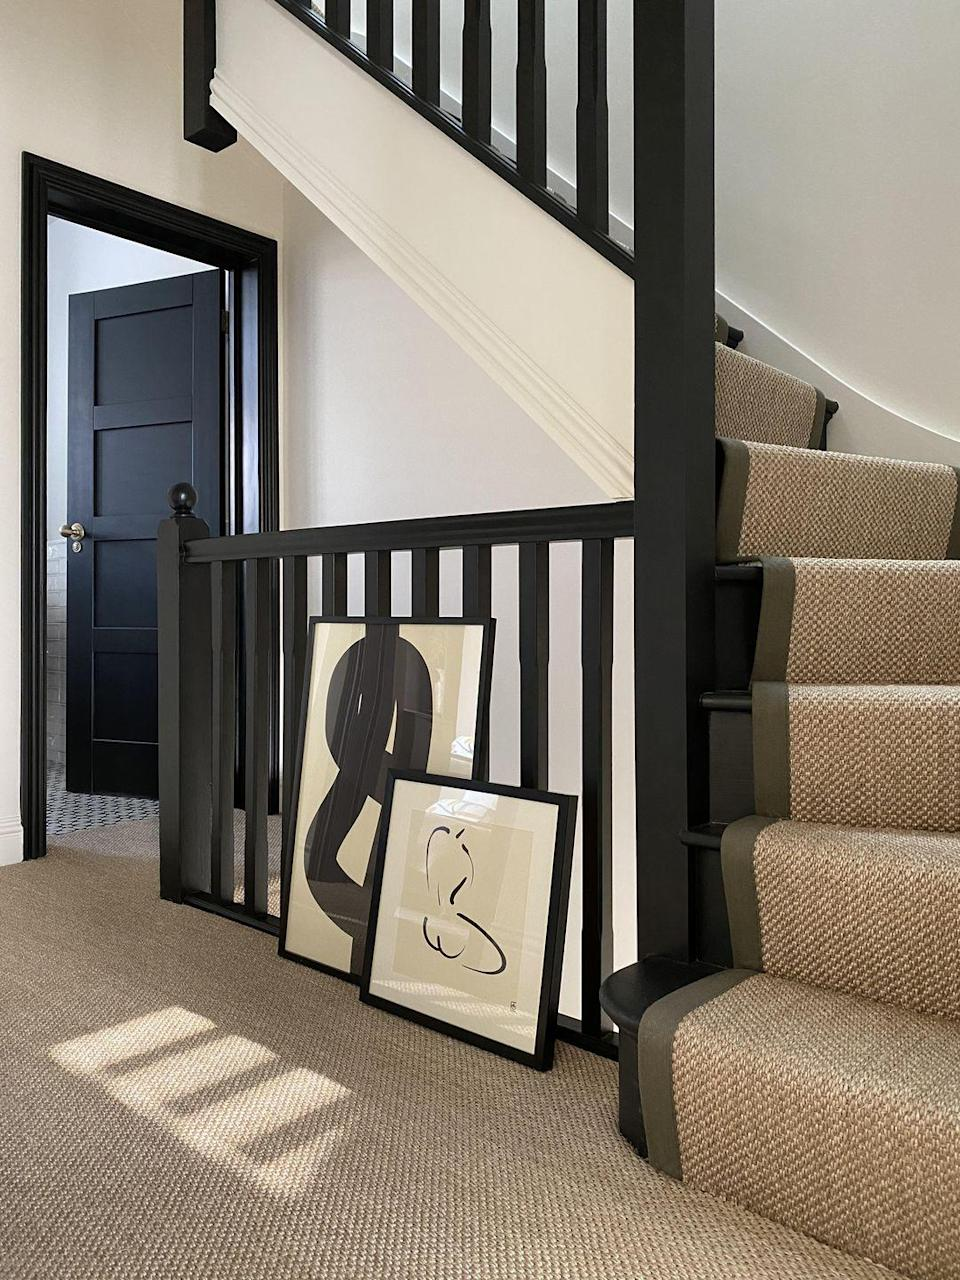 """<p>Carpet runners — decorative strips of carpet which run down the centre of a staircase — are all the rage on <a href=""""https://www.housebeautiful.com/uk/decorate/bedroom/g28786488/instagram-bedroom/"""" rel=""""nofollow noopener"""" target=""""_blank"""" data-ylk=""""slk:Instagram"""" class=""""link rapid-noclick-resp"""">Instagram</a>. Unlike fully carpeted options, runners aren't as wide as your steps as they leave a gap on the side. Typically installed over hardwood or tiled stairs, they are a brilliant choice for both modern and traditional homes.</p><p>'Runners can be fitted on the stairs either as a standard carpet, attached with stair rods or used as standalone hall runner,' says Jenna Kane, Product Development at <a href=""""https://www.kersaintcobb.co.uk/"""" rel=""""nofollow noopener"""" target=""""_blank"""" data-ylk=""""slk:Kersaint Cobb"""" class=""""link rapid-noclick-resp"""">Kersaint Cobb</a>.<br></p><p>Pictured: Carpet runner by <a href=""""https://www.fibreflooring.com/"""" rel=""""nofollow noopener"""" target=""""_blank"""" data-ylk=""""slk:Fibre Flooring"""" class=""""link rapid-noclick-resp"""">Fibre Flooring</a></p><p><strong>READ MORE</strong>: <a href=""""https://www.housebeautiful.com/uk/decorate/floors/g35783300/coir-doormats/"""" rel=""""nofollow noopener"""" target=""""_blank"""" data-ylk=""""slk:23 beautiful doormats to brighten up your home's entryway"""" class=""""link rapid-noclick-resp"""">23 beautiful doormats to brighten up your home's entryway</a></p>"""